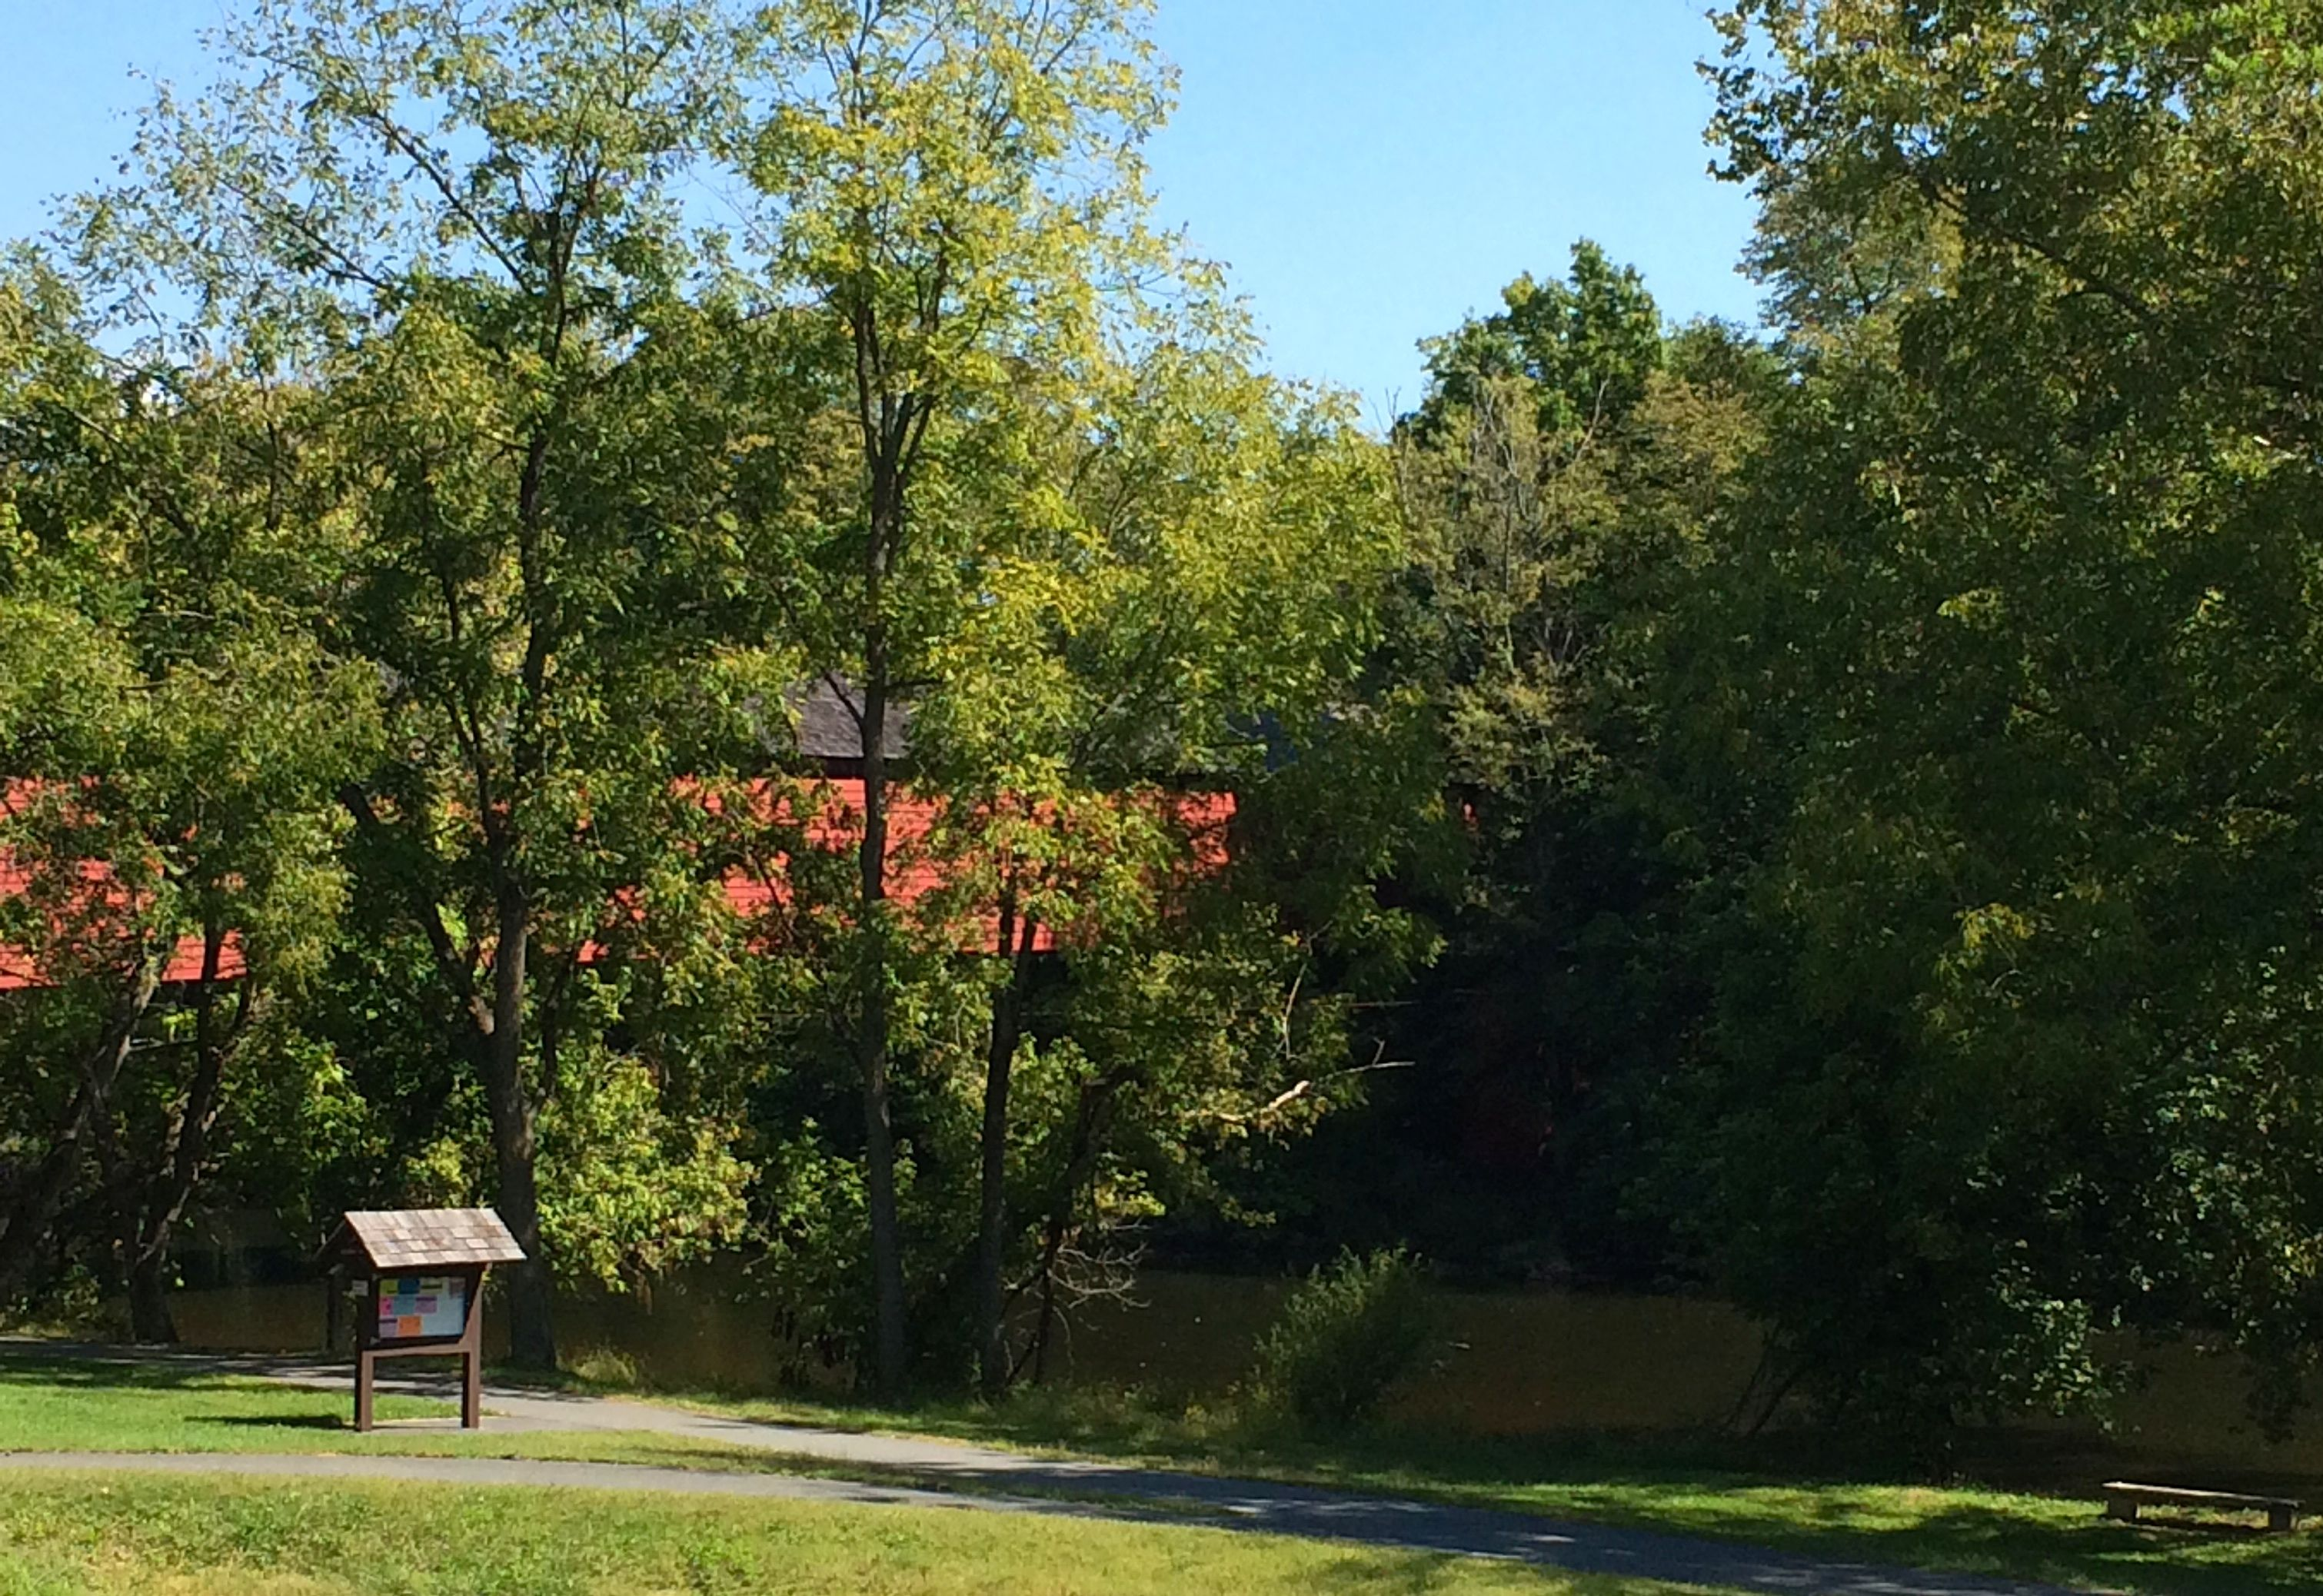 Red Covered Bridge over the Union Canal